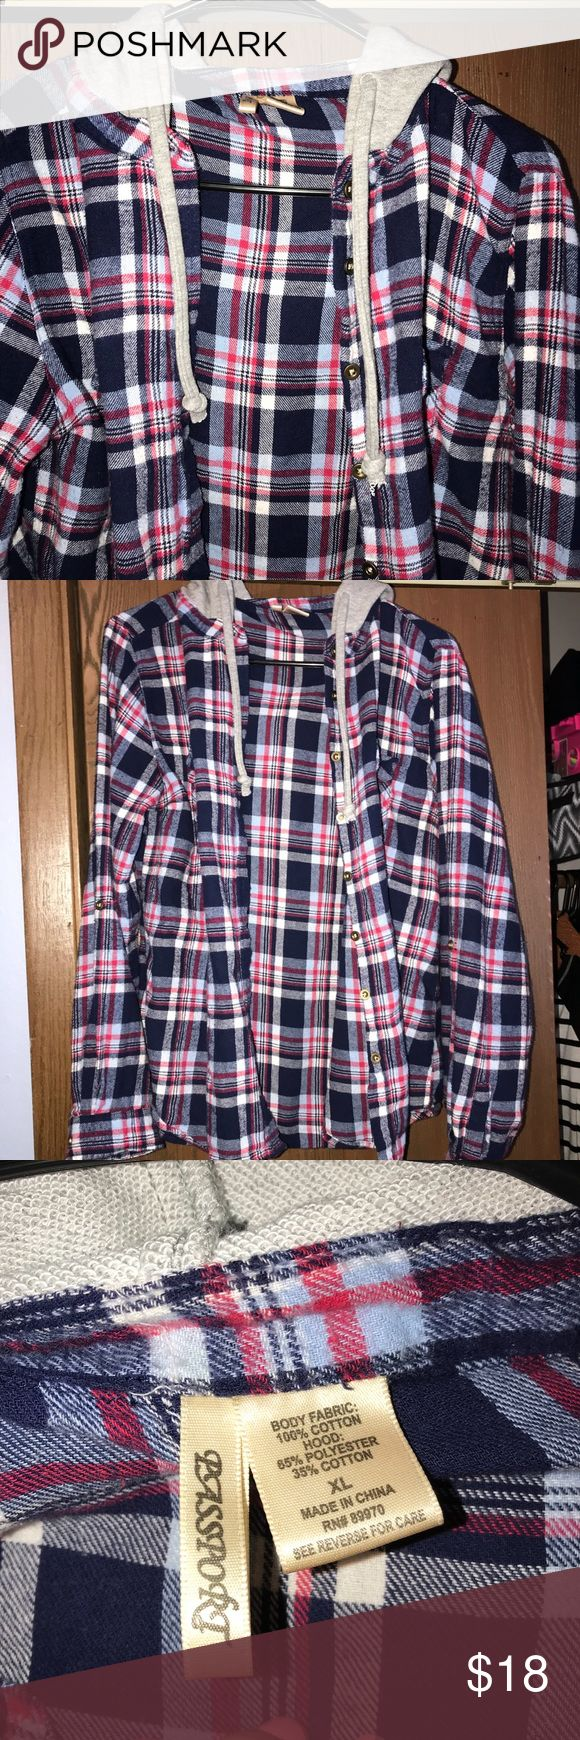 Plaid flannel w/ hood very cute plaid flannel. flannel material. grey hood with strings. in excellent condition Passport Tops Button Down Shirts